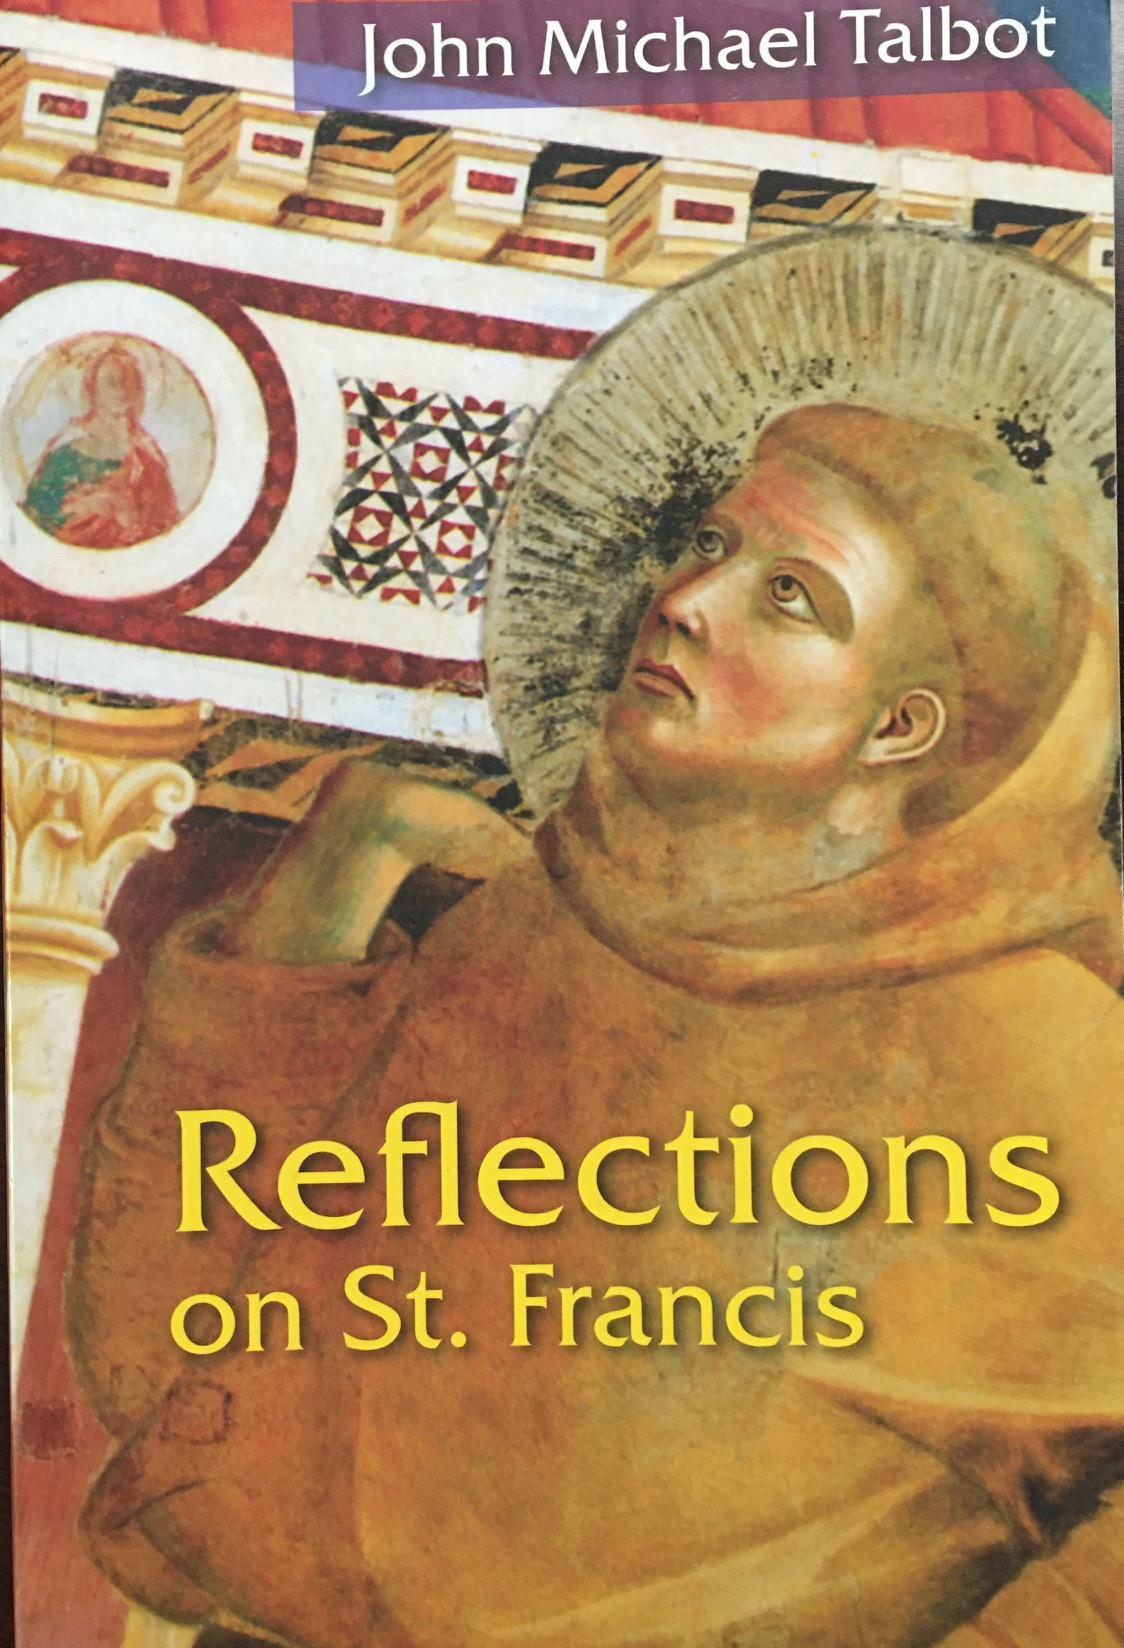 Image for Reflections on St. Francis